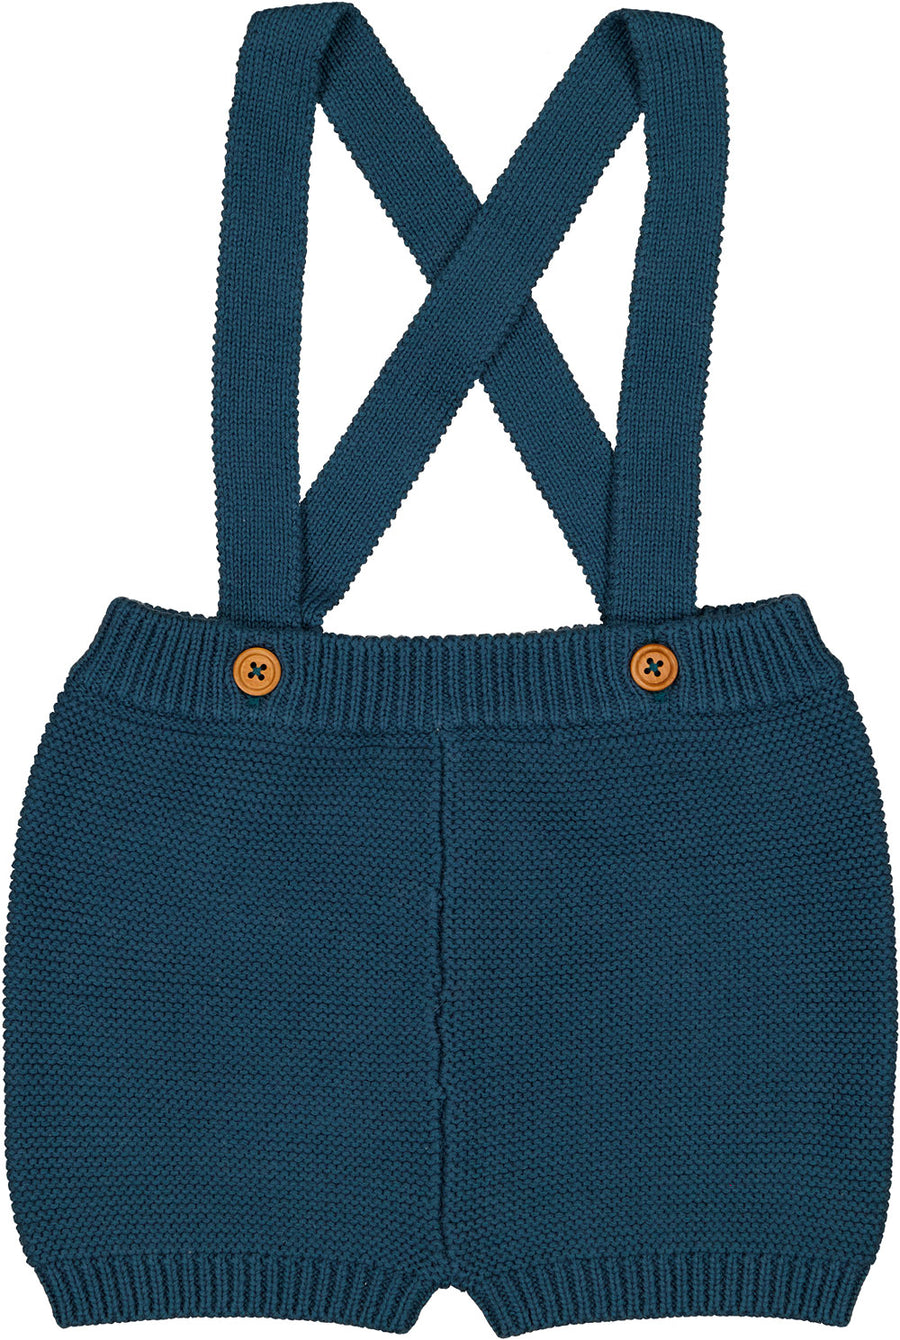 Blue Knitted Maxence Bloomer by Louis Louise